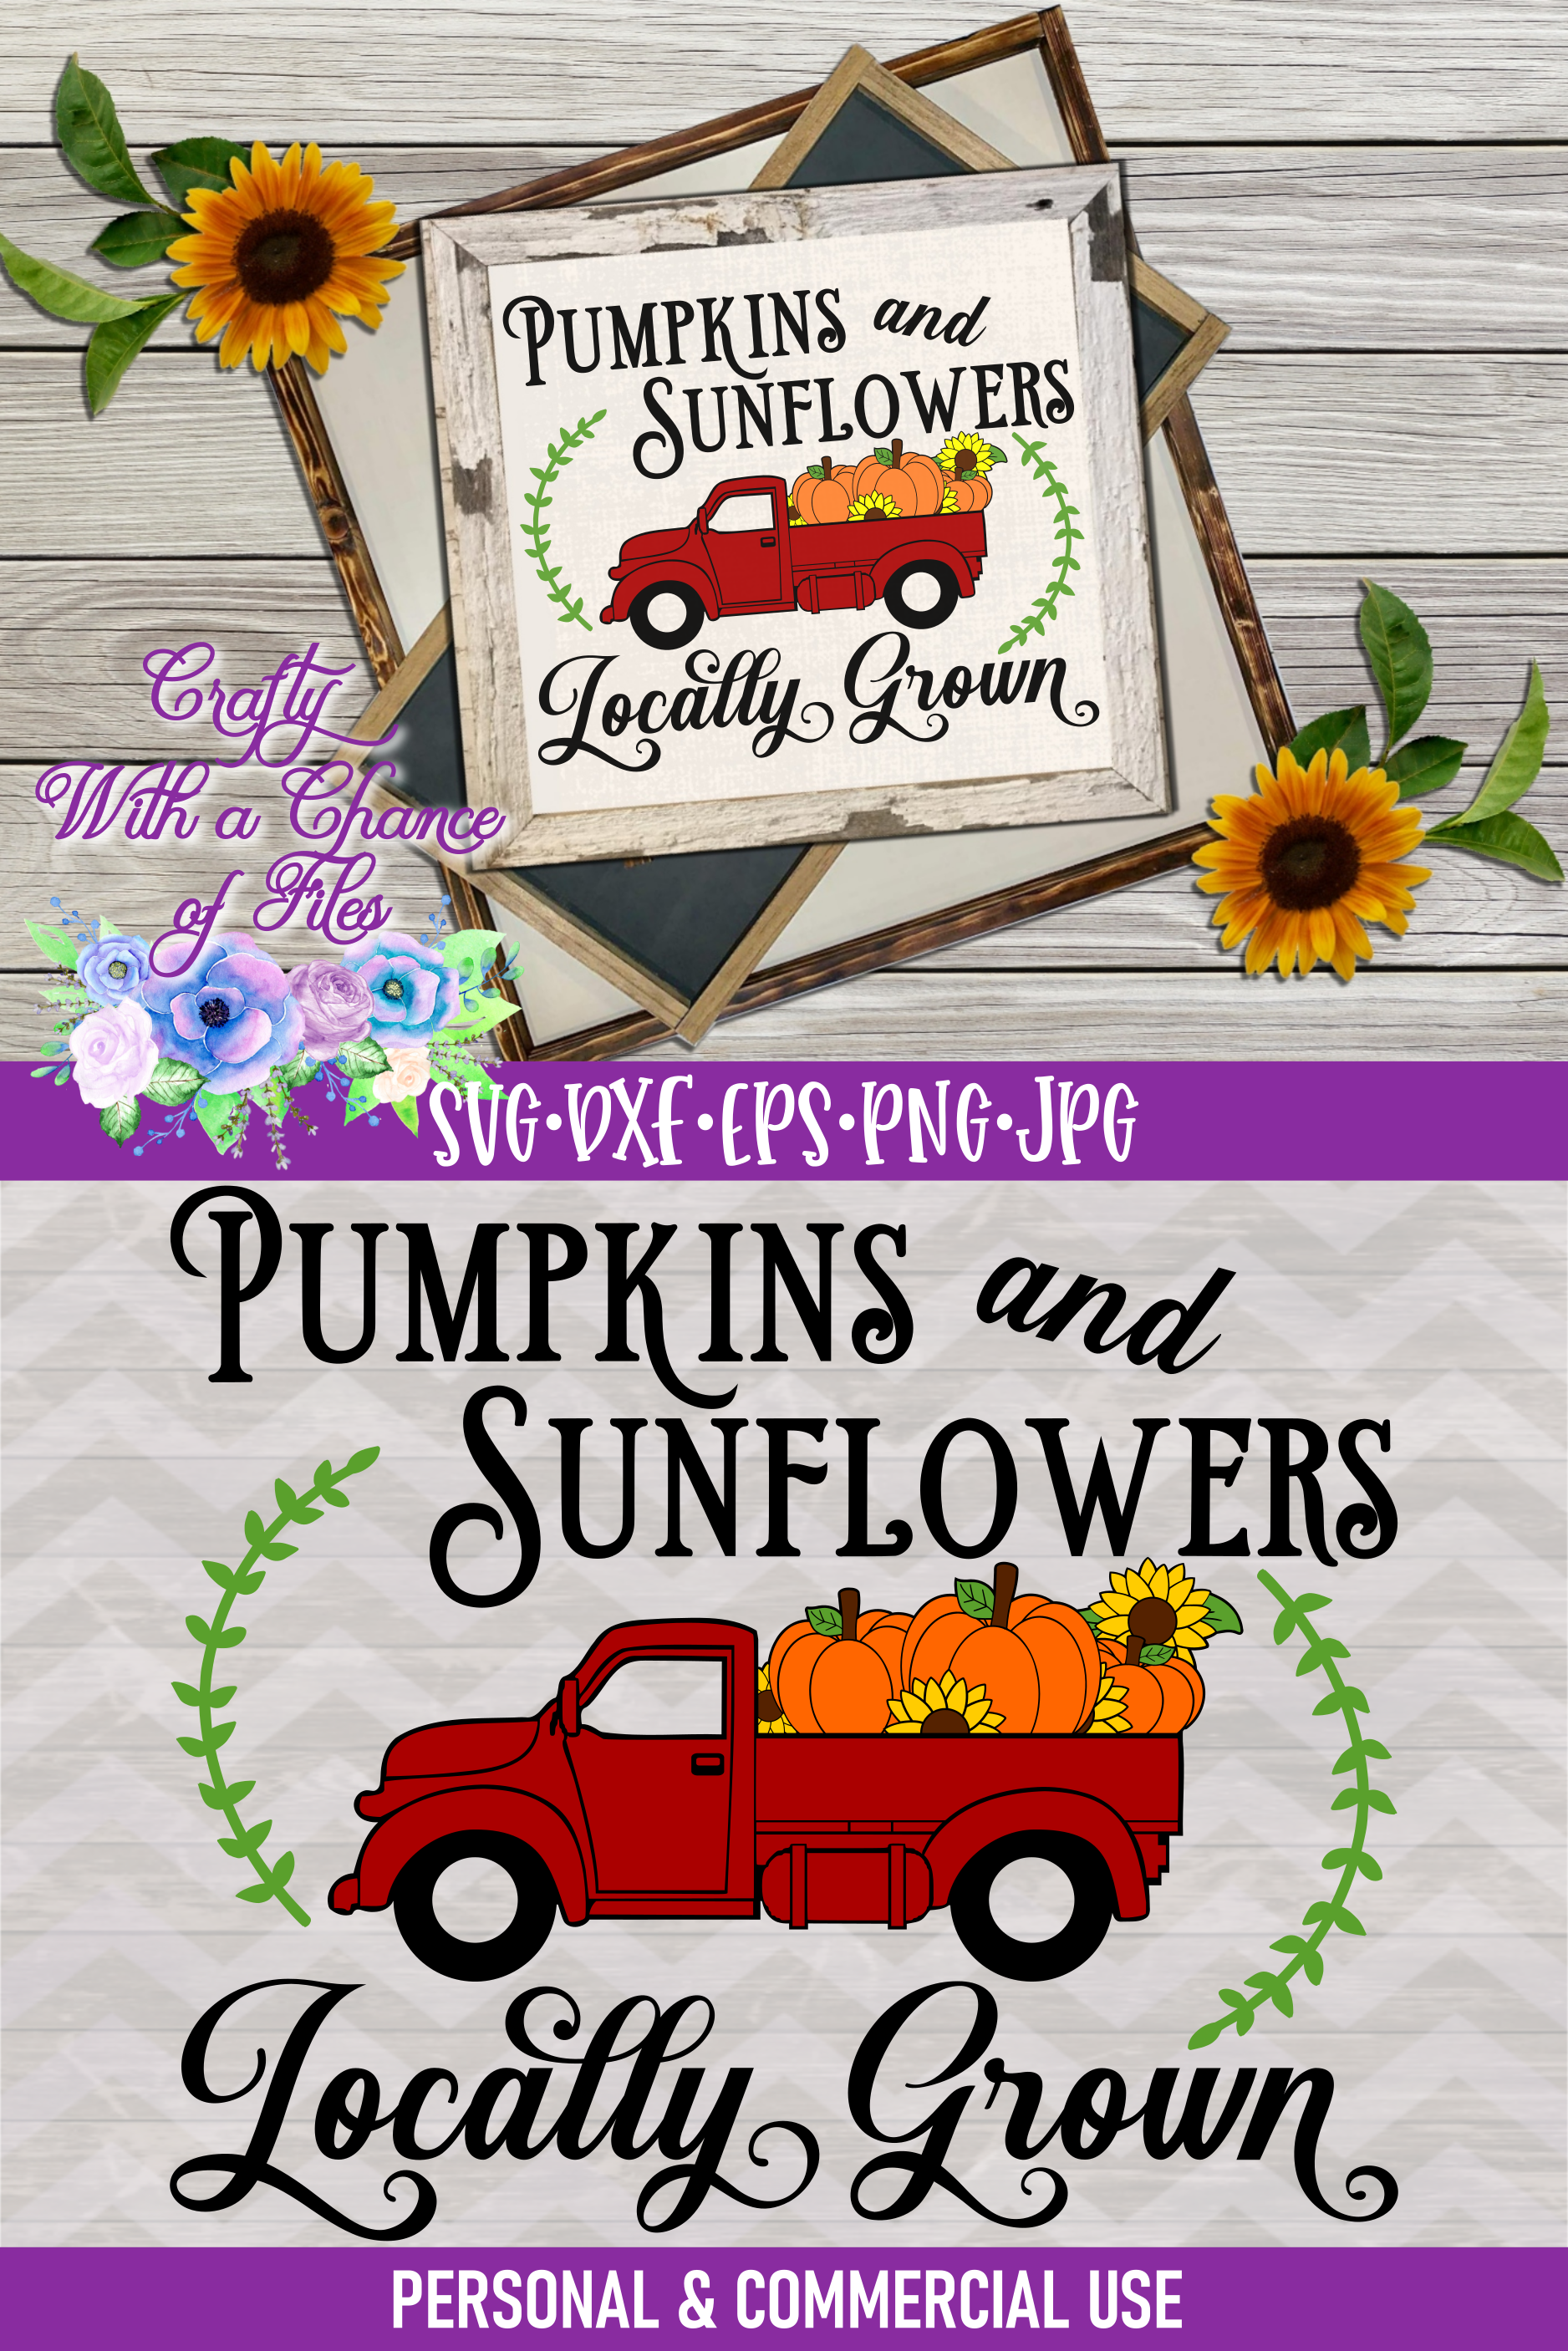 Pumpkins & Sunflowers Locally Grown SVG | Fall Truck SVG example image 4